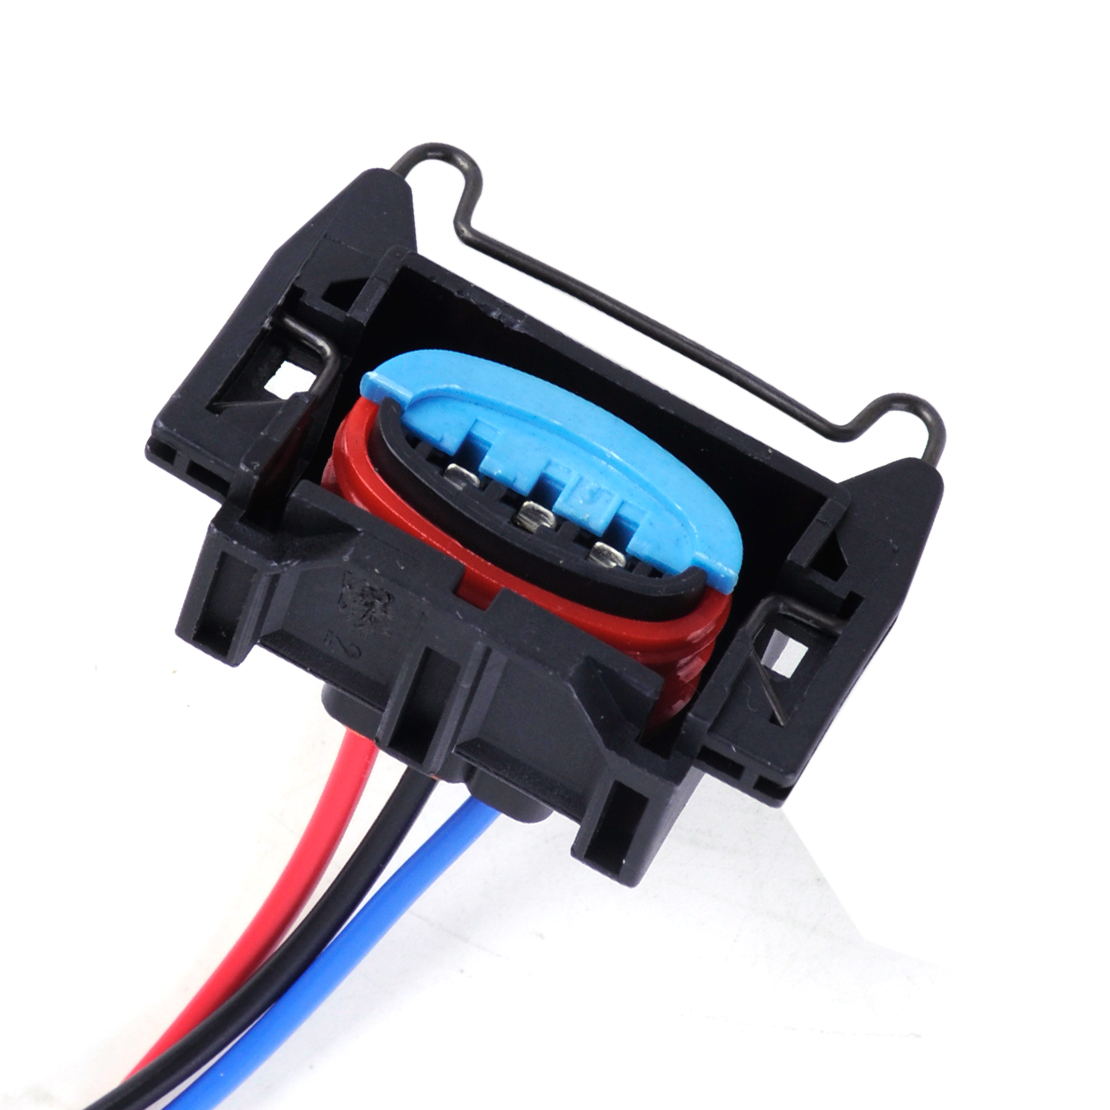 Fit Ford Mazda 645-302 Ignition Coil Pack Wiring Harness Connector 13.5cm Cable